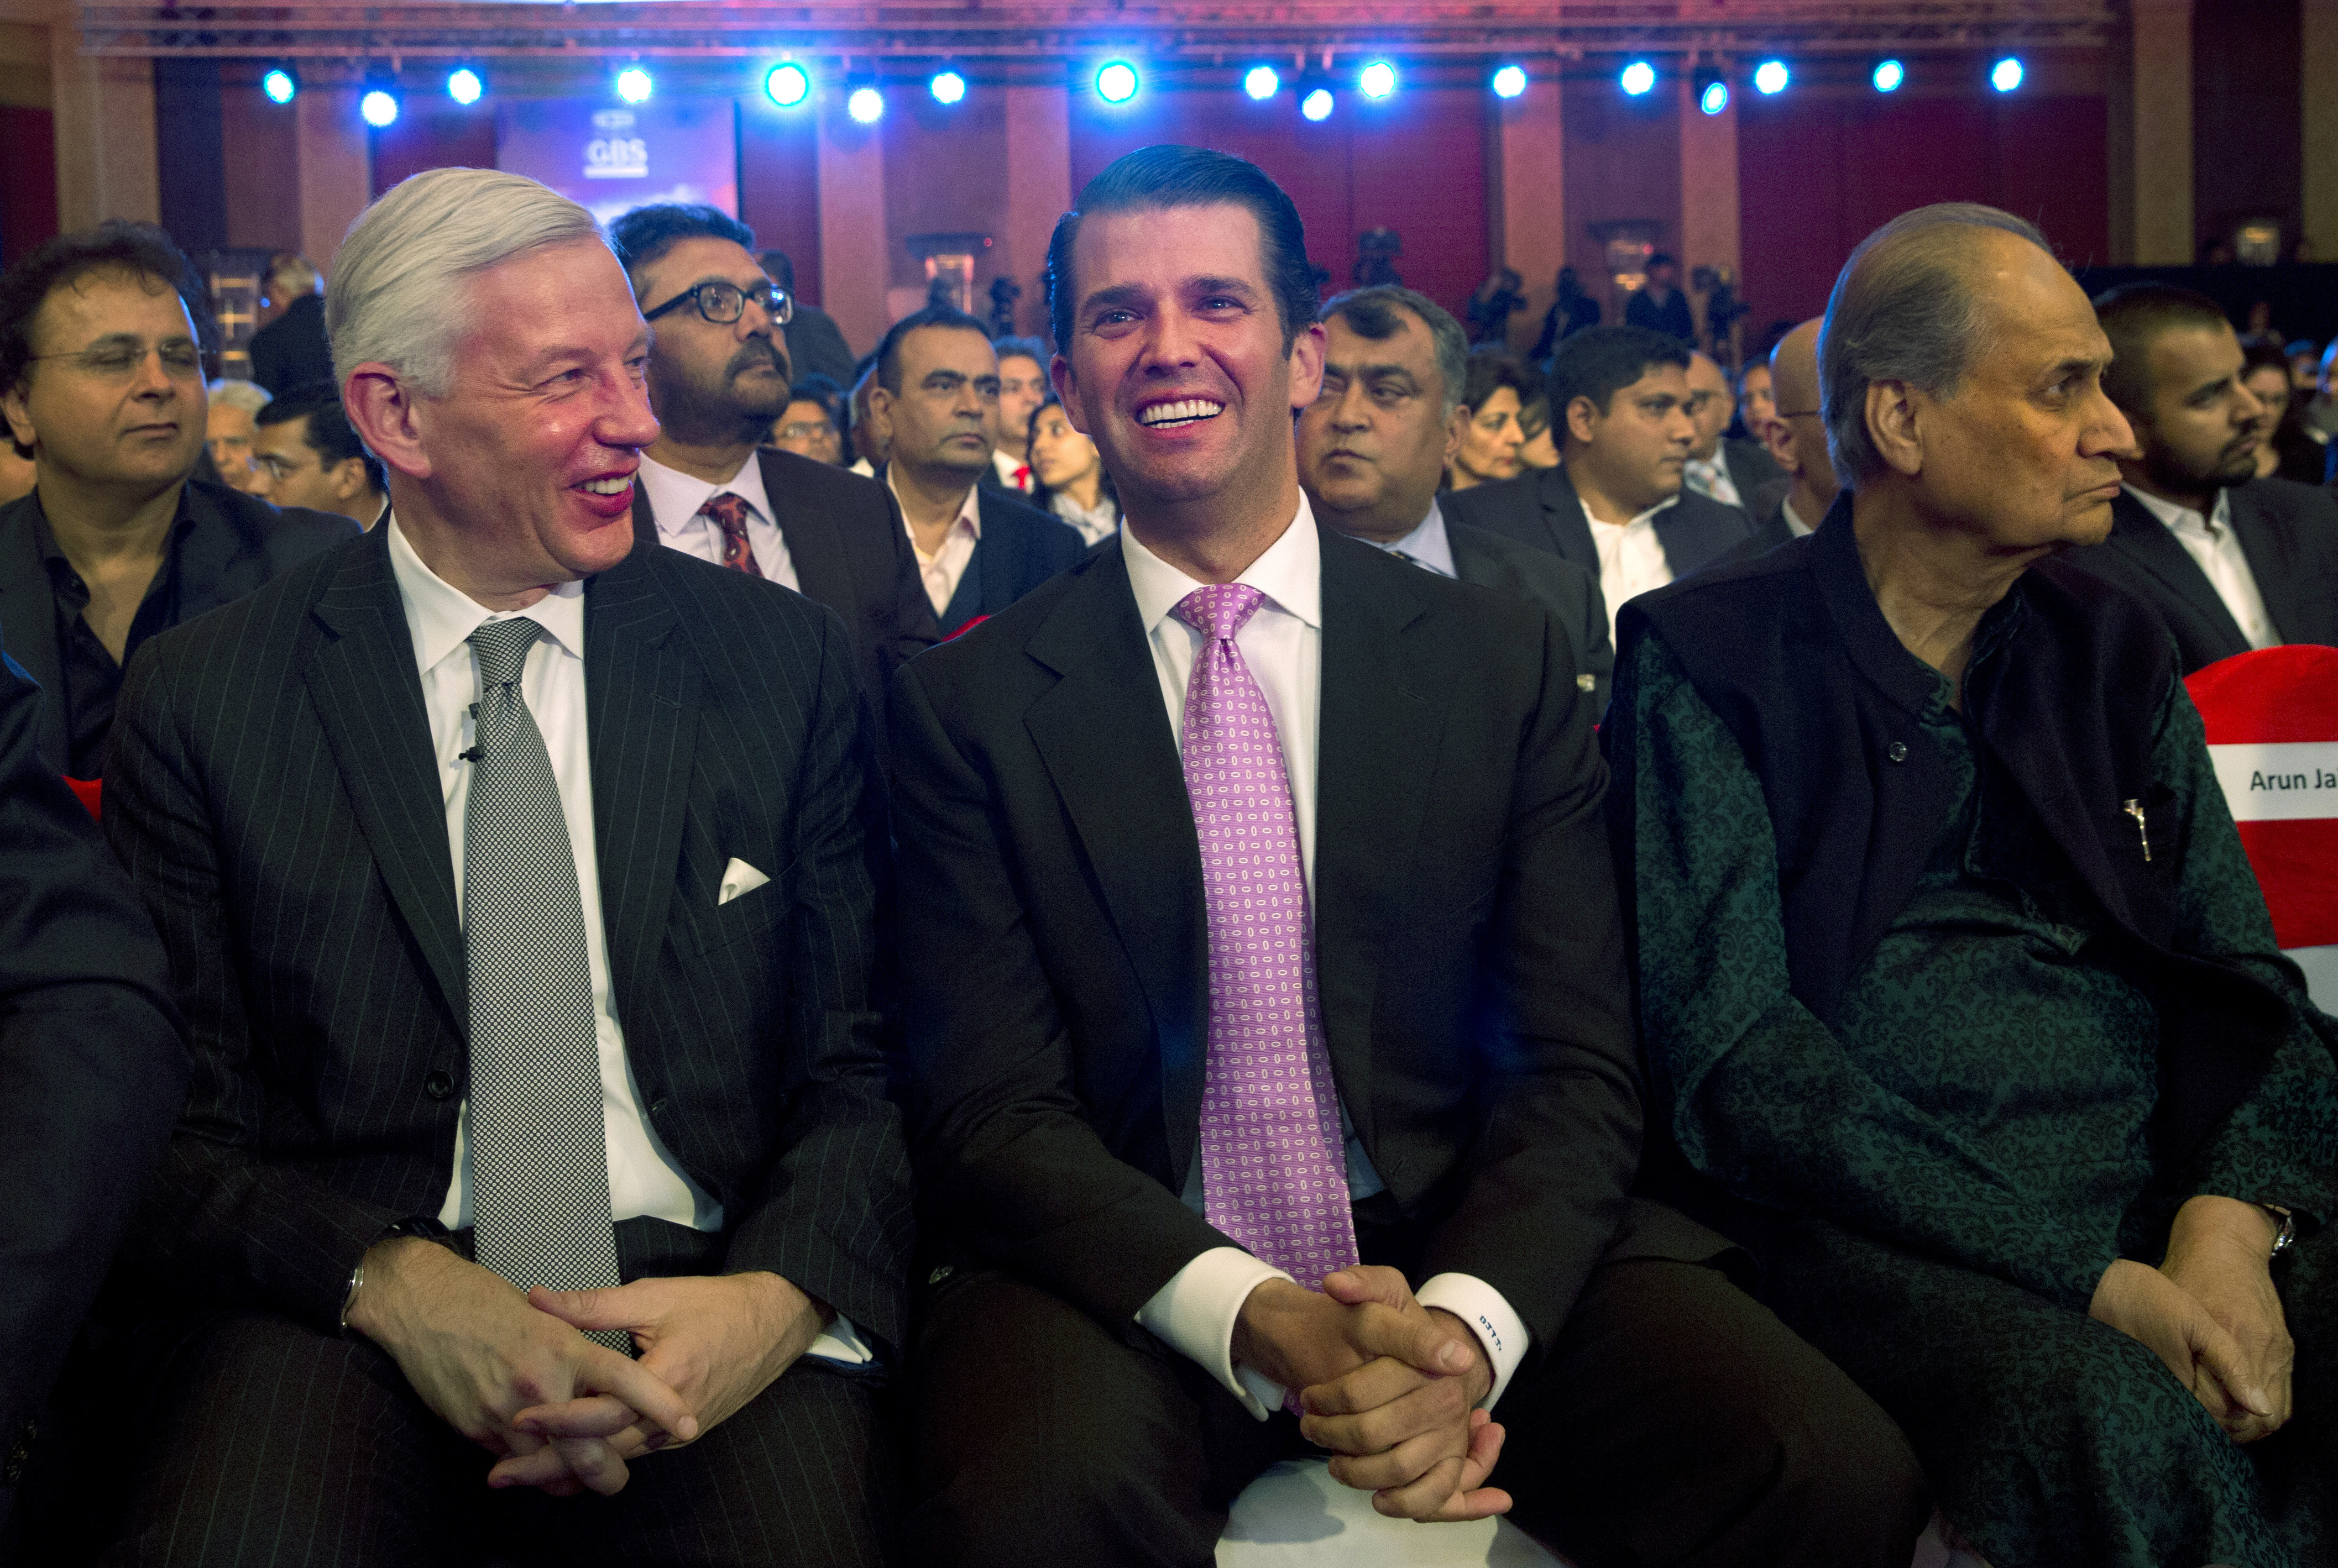 washingtonpost.com - Annie Gowen - Taxpayers' cost for Trump Jr.'s business trip to India nearly $100K, documents show